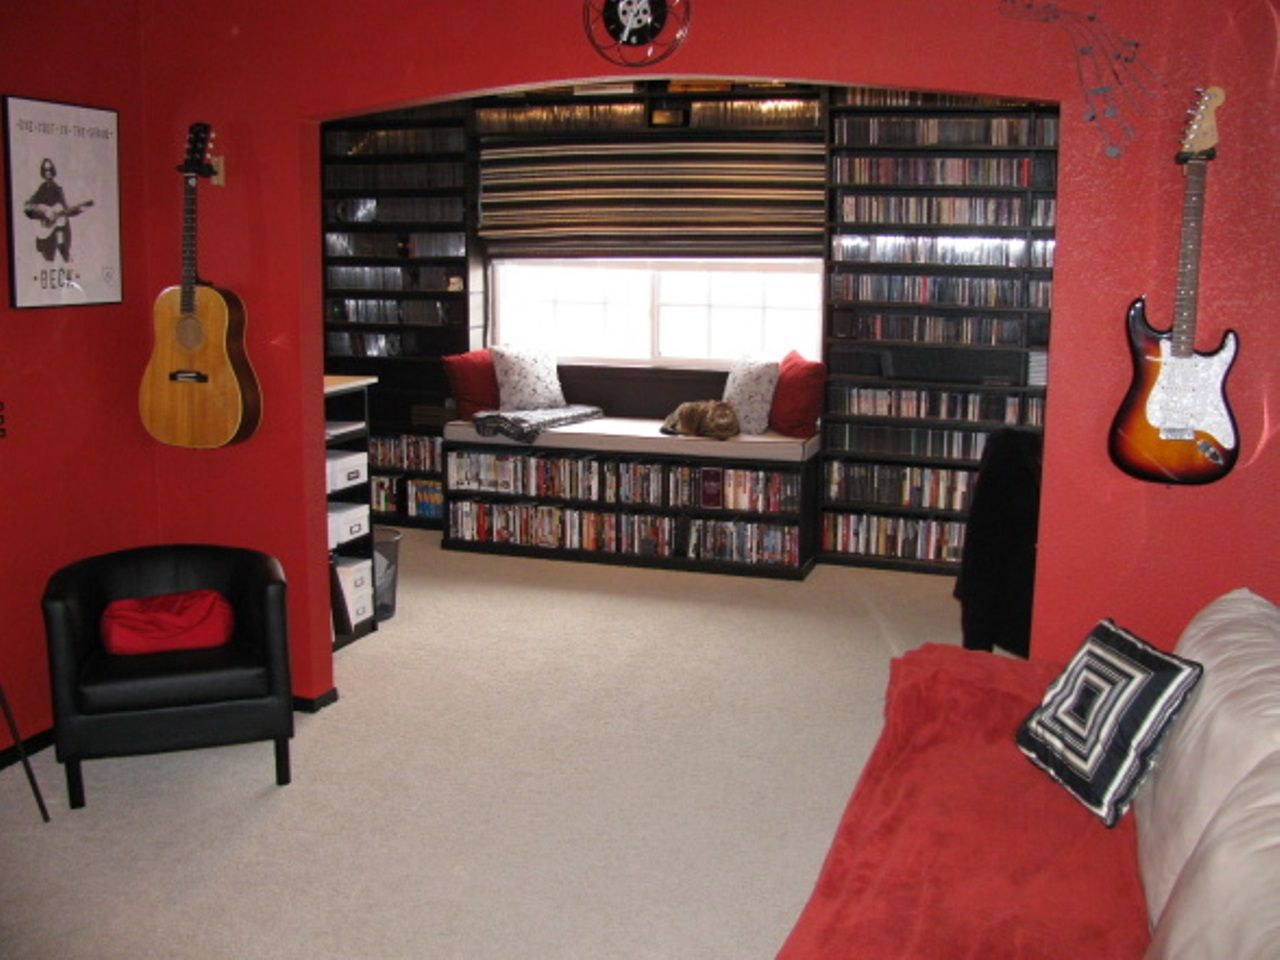 Guitar Decor For Bedroom Music Room Ideas Music Room Ideas Room Media Room